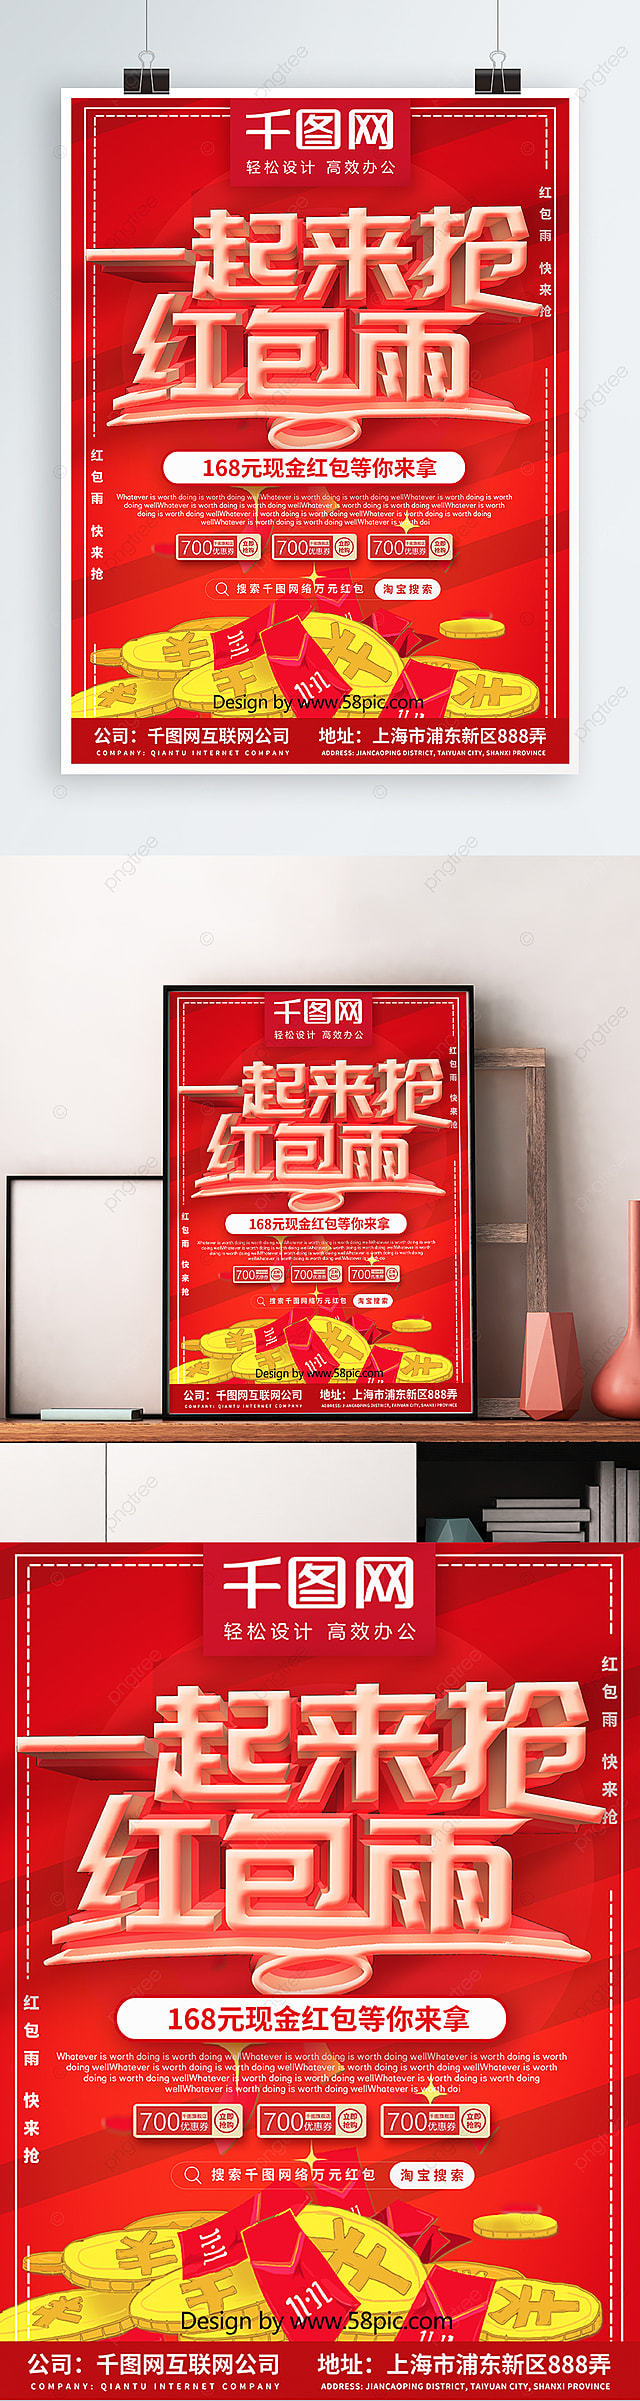 Red Envelope Rain Grab Red Envelopes Promotions Posters Template